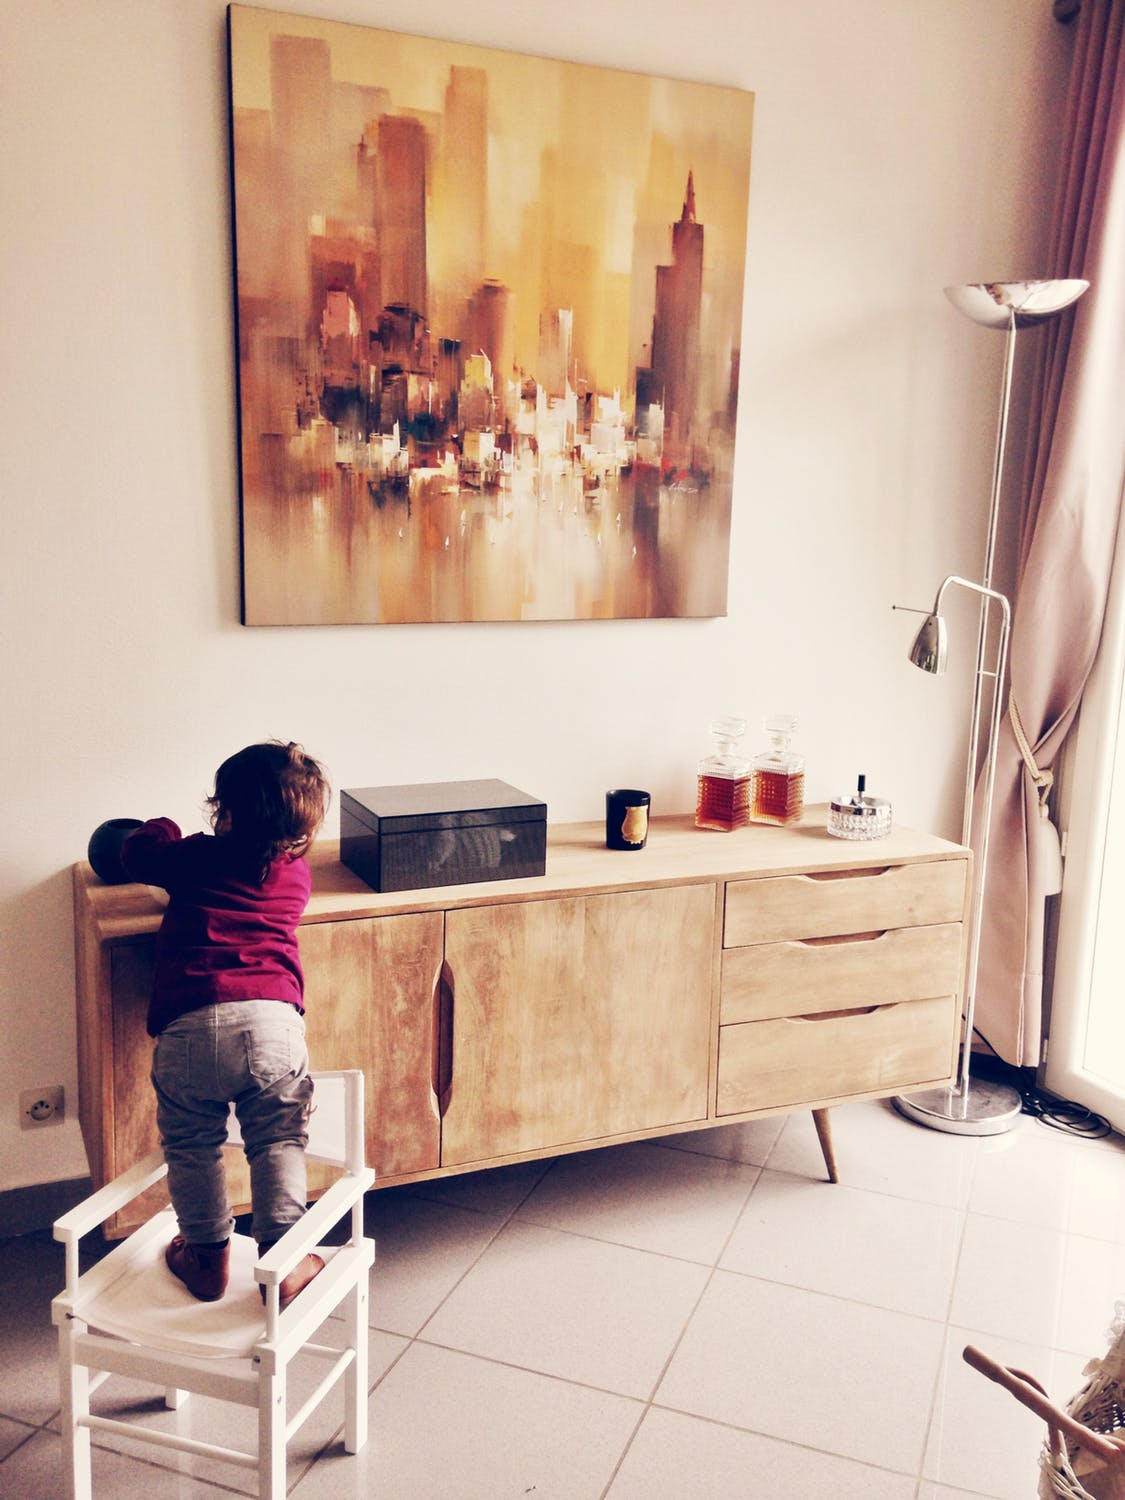 How to Keep Your Home Stylish and Toddler Friendly